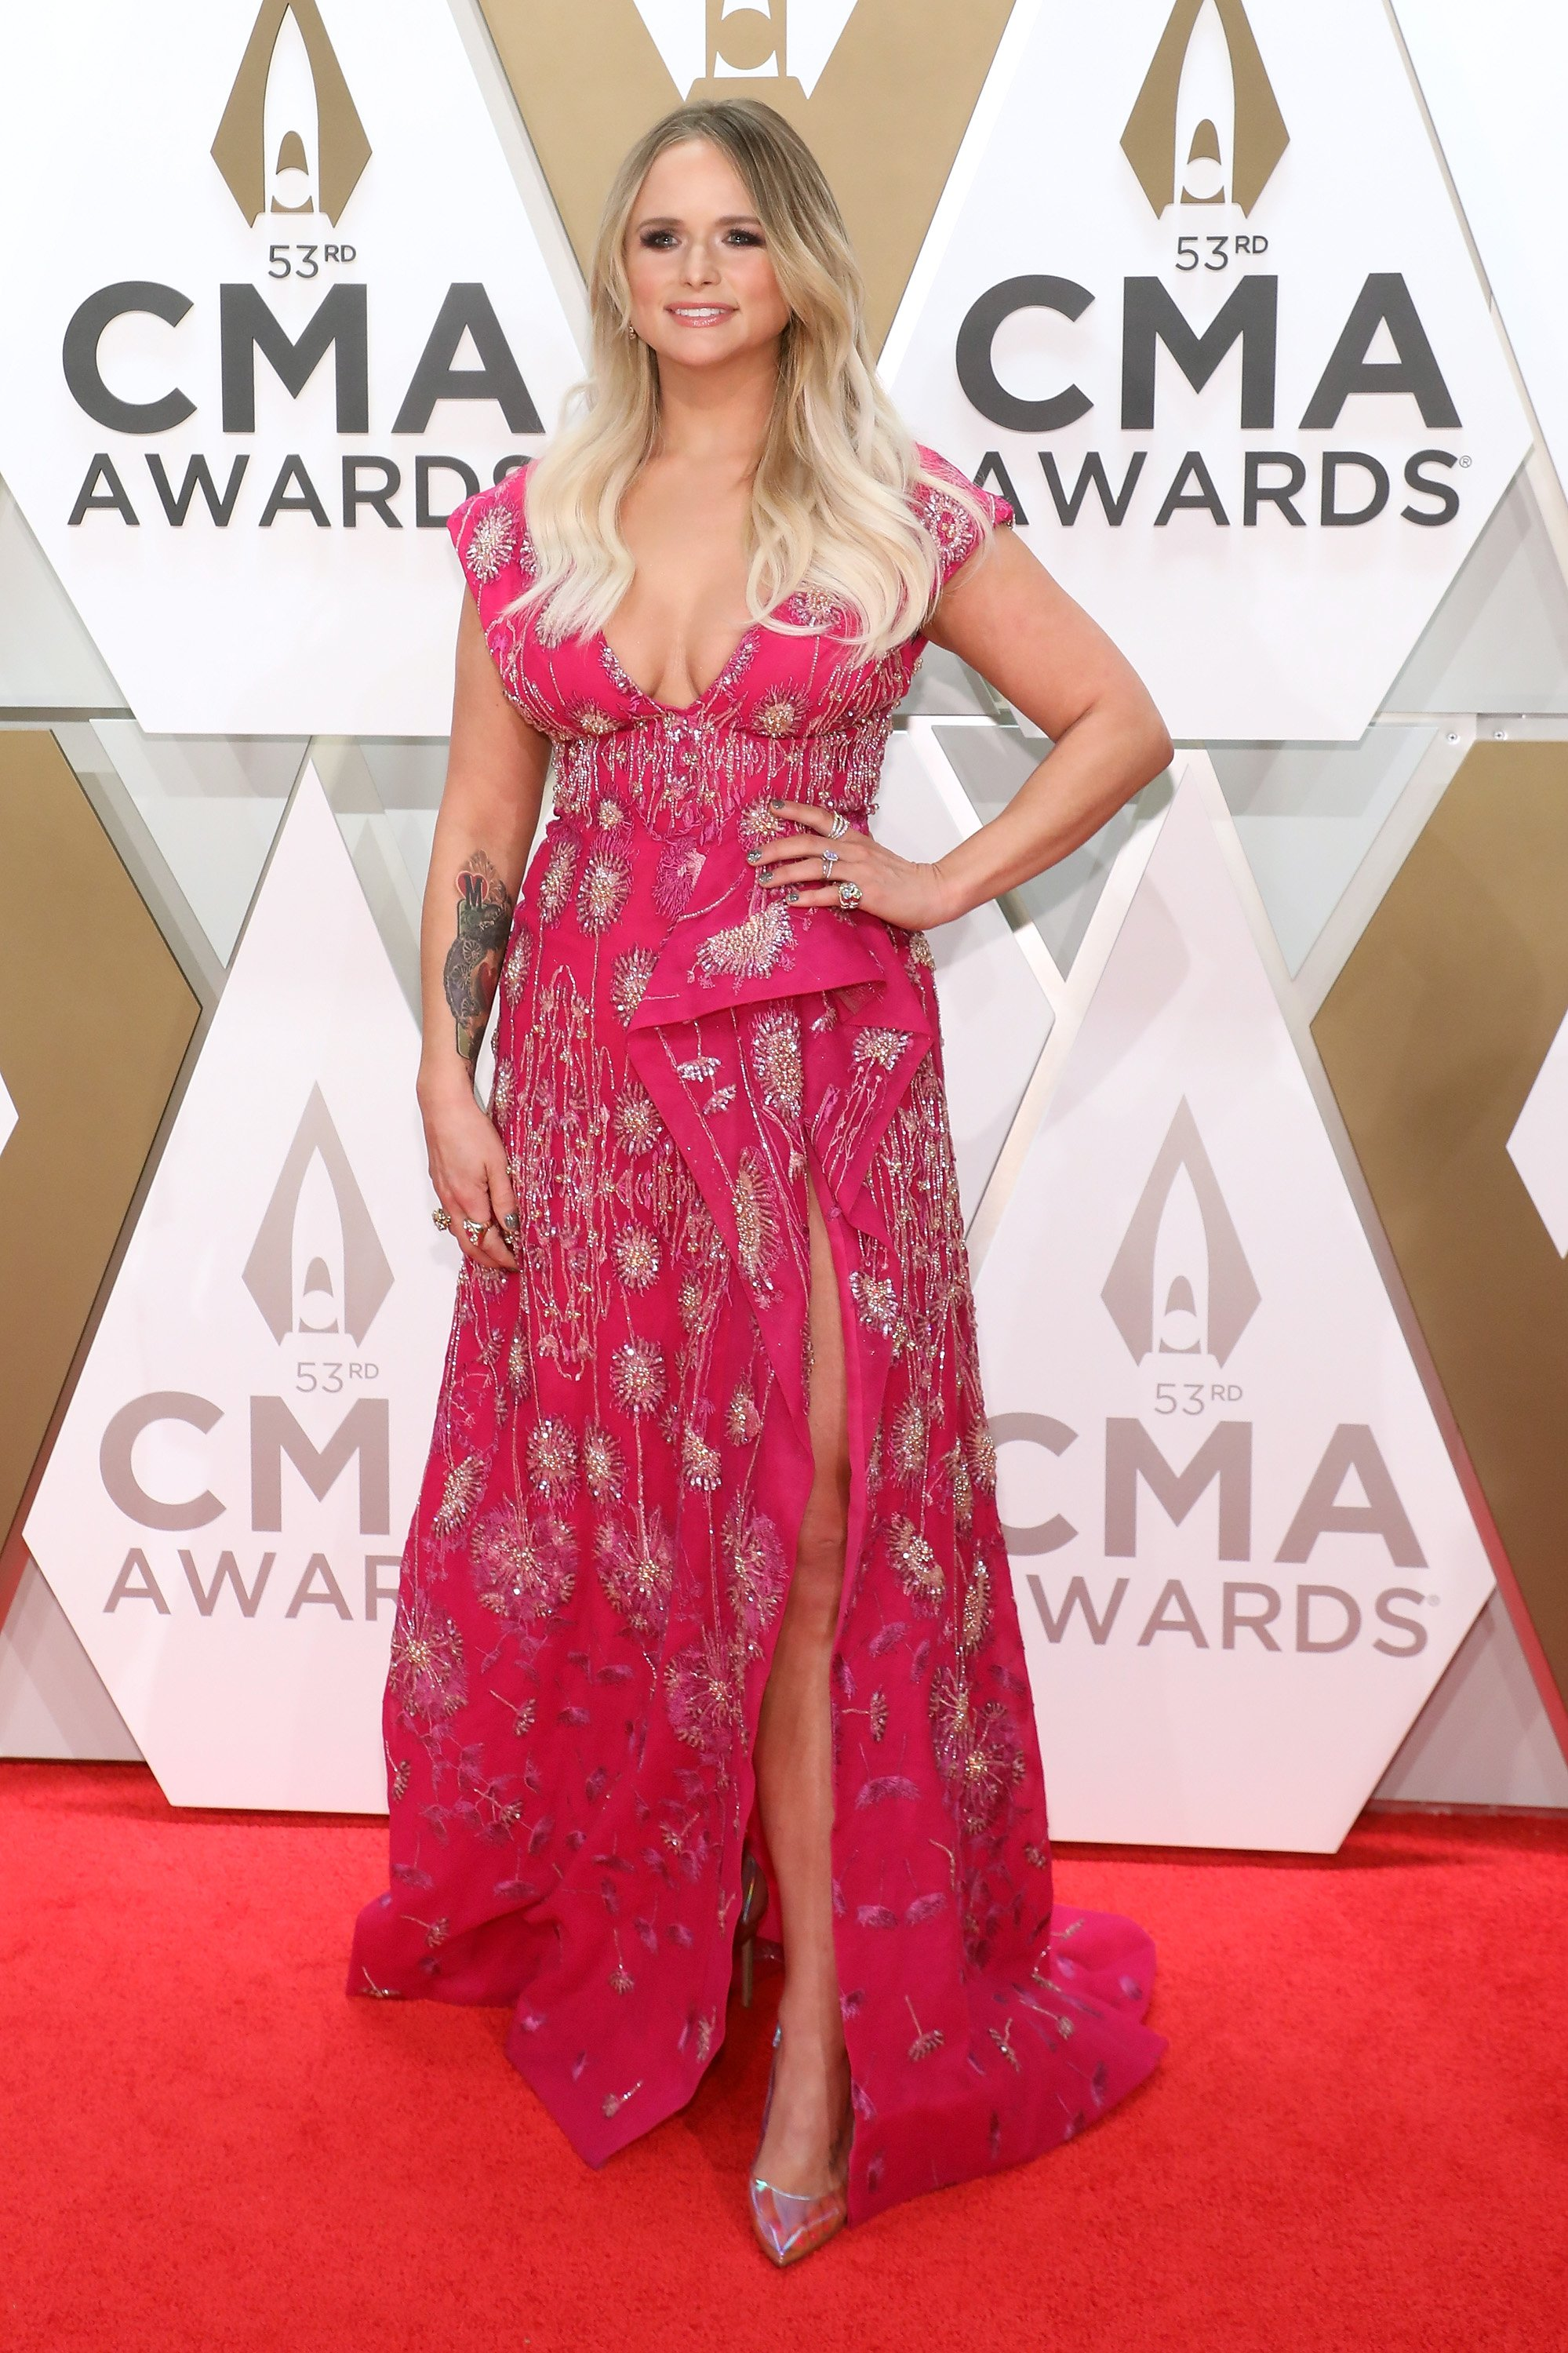 Miranda Lambert attends the 53nd annual CMA Awards at Bridgestone Arena on November 13, 2019, in Nashville, Tennessee. | Source: Getty Images.